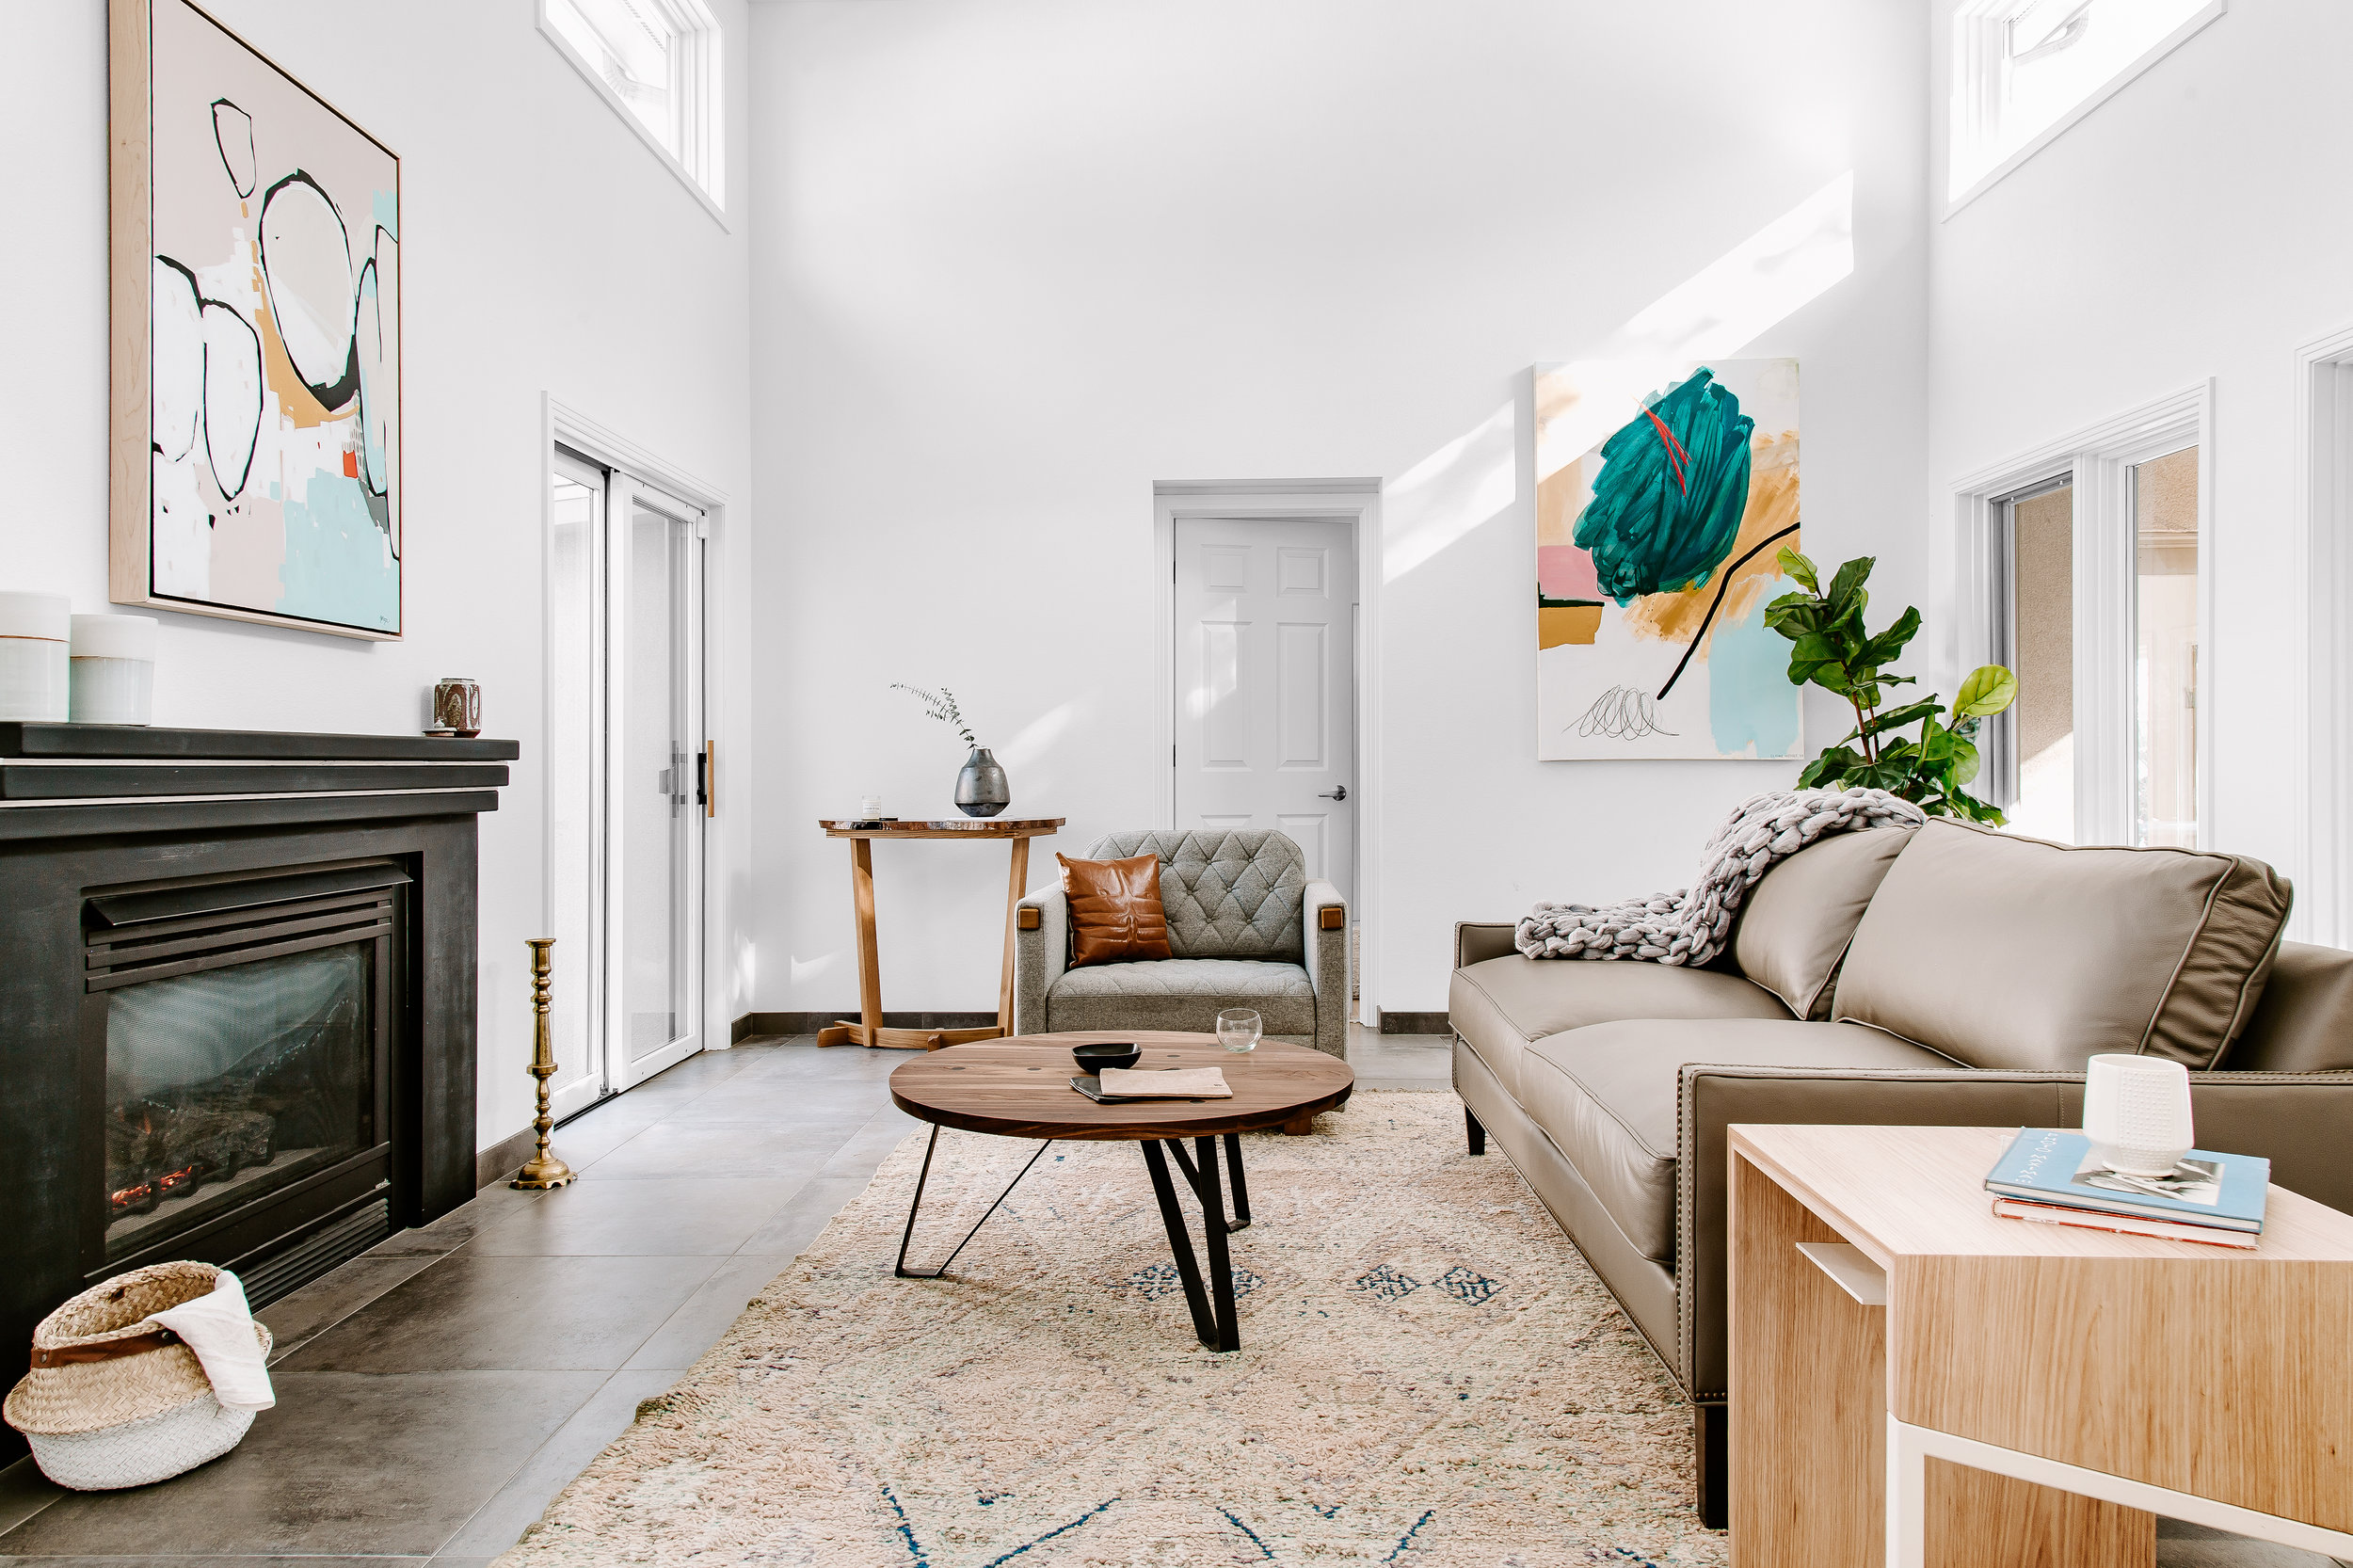 1223 6th St. - A bright, spacious single-family home near Flagstaff in Boulder, CO. Listed by Zach Zeldner, Compass.Sold for $1.39 million in 3 weeks